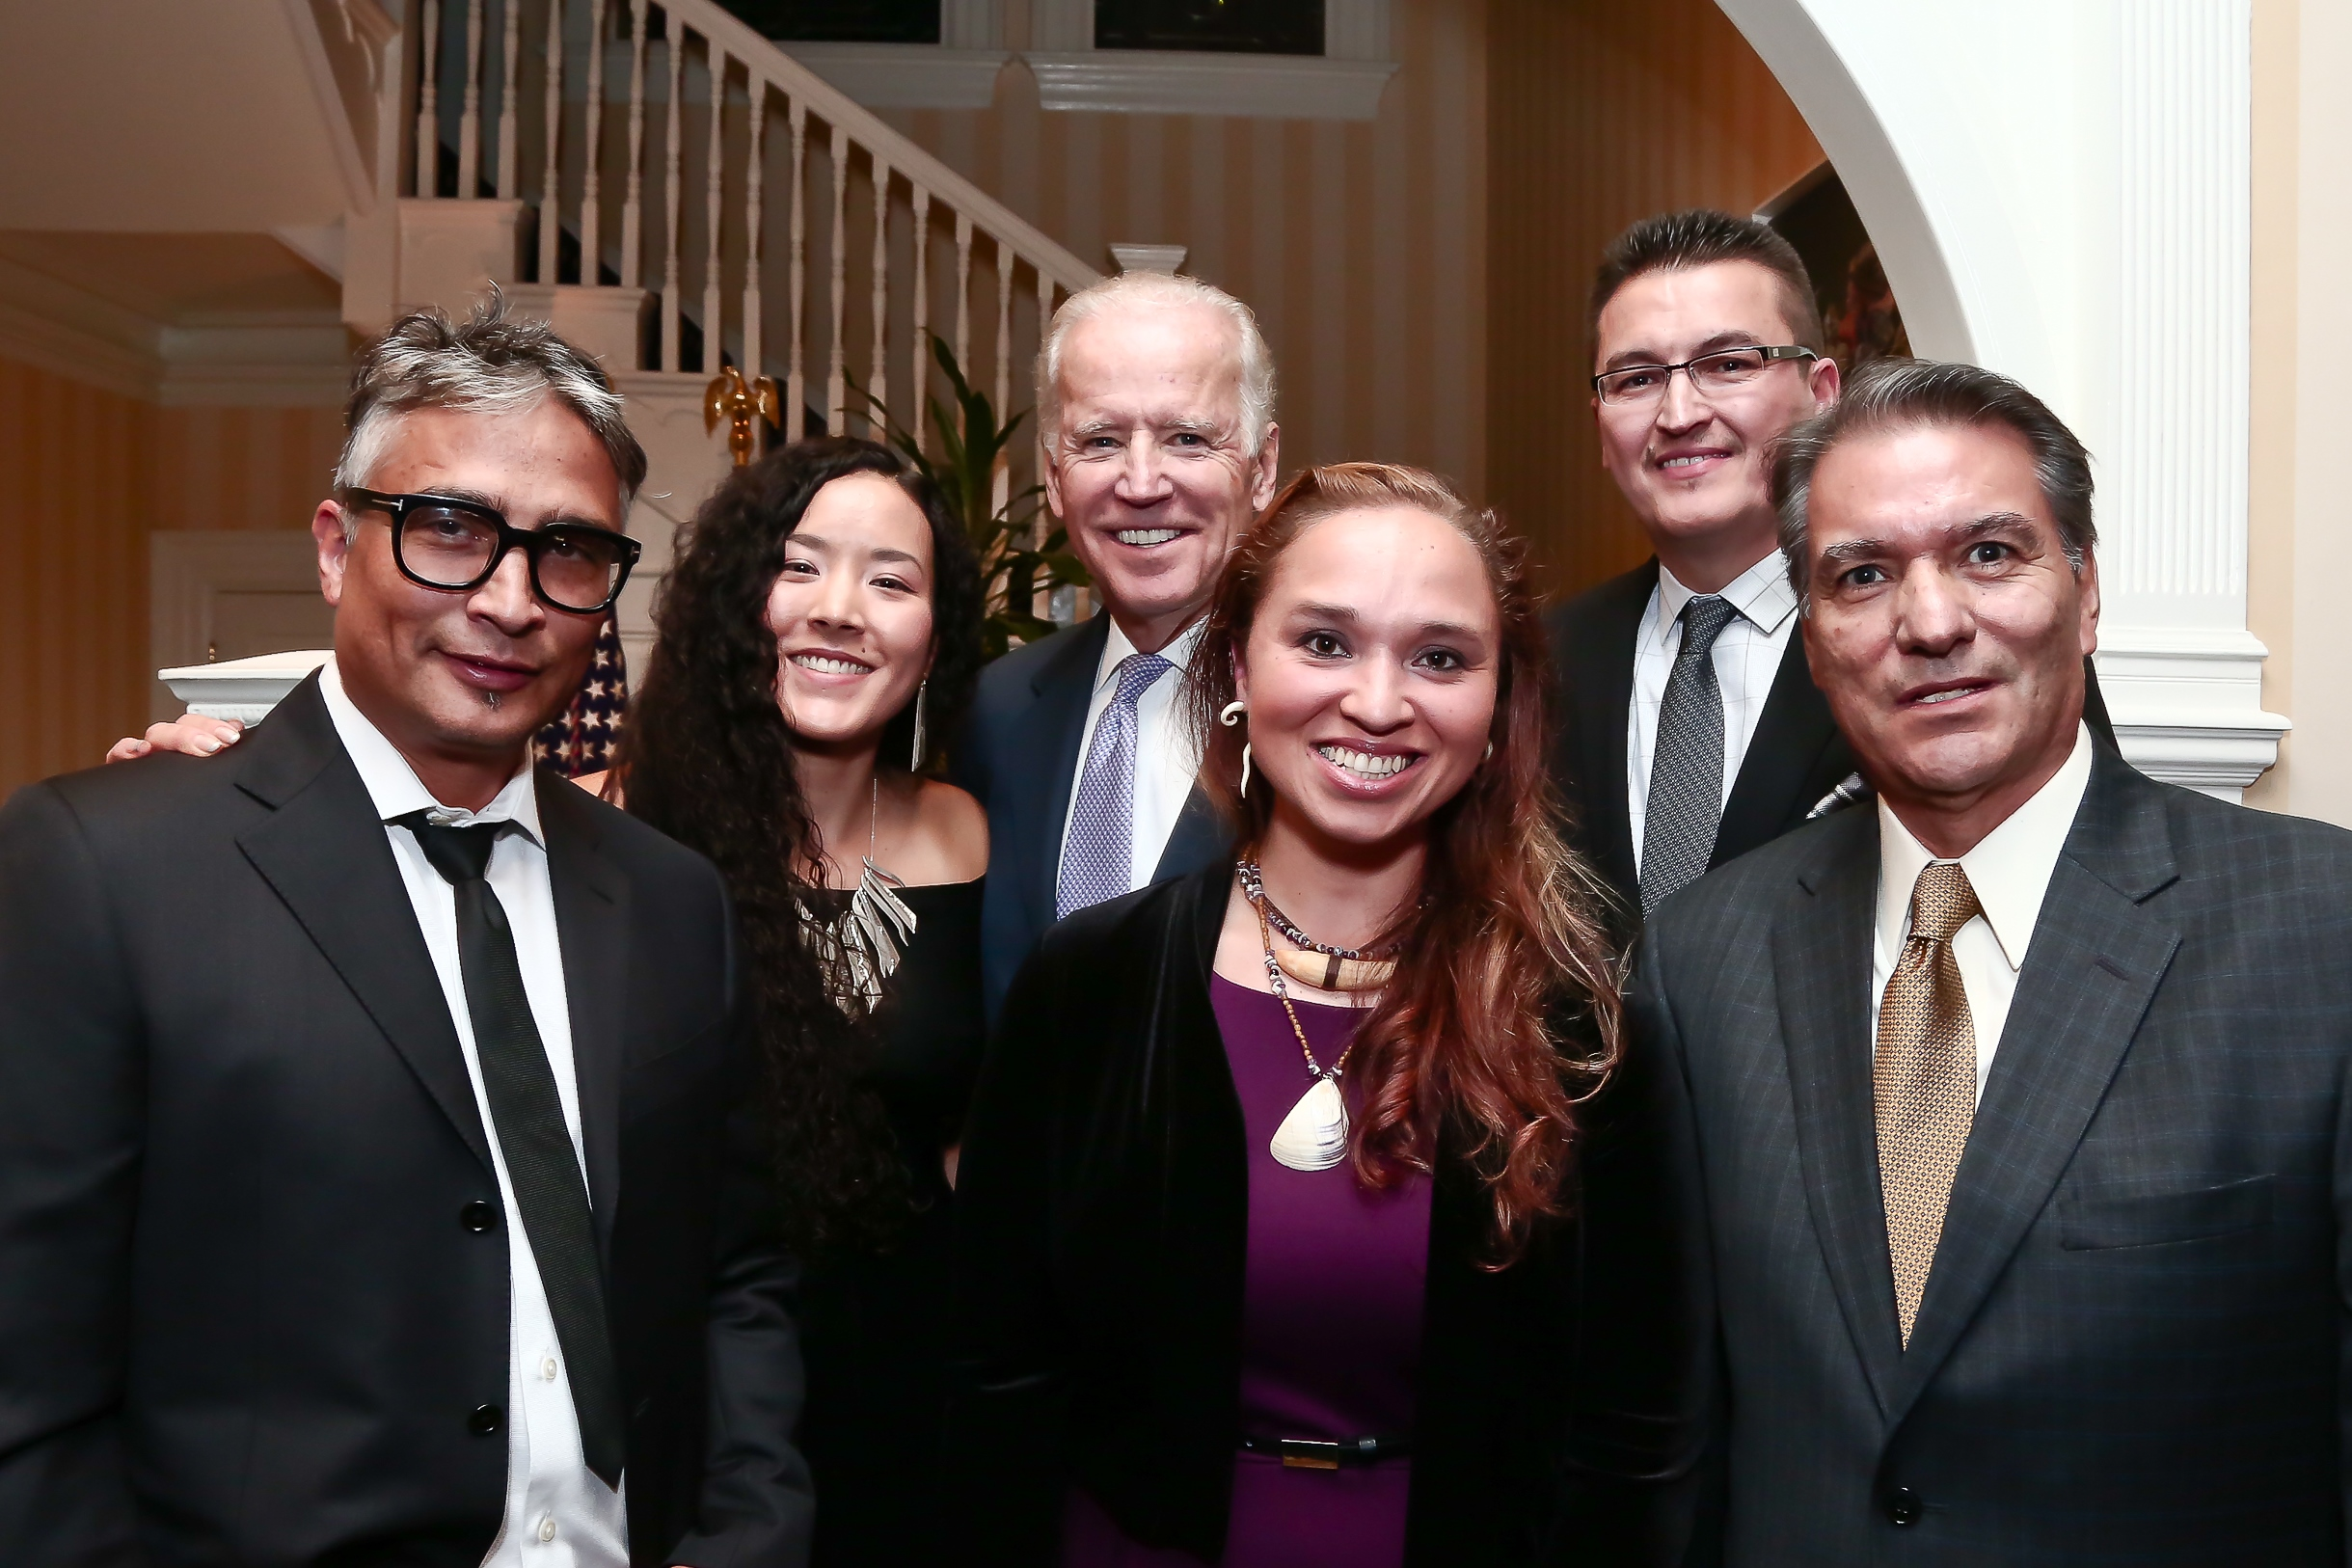 AIE Biden Event. Oct. 27, 2015